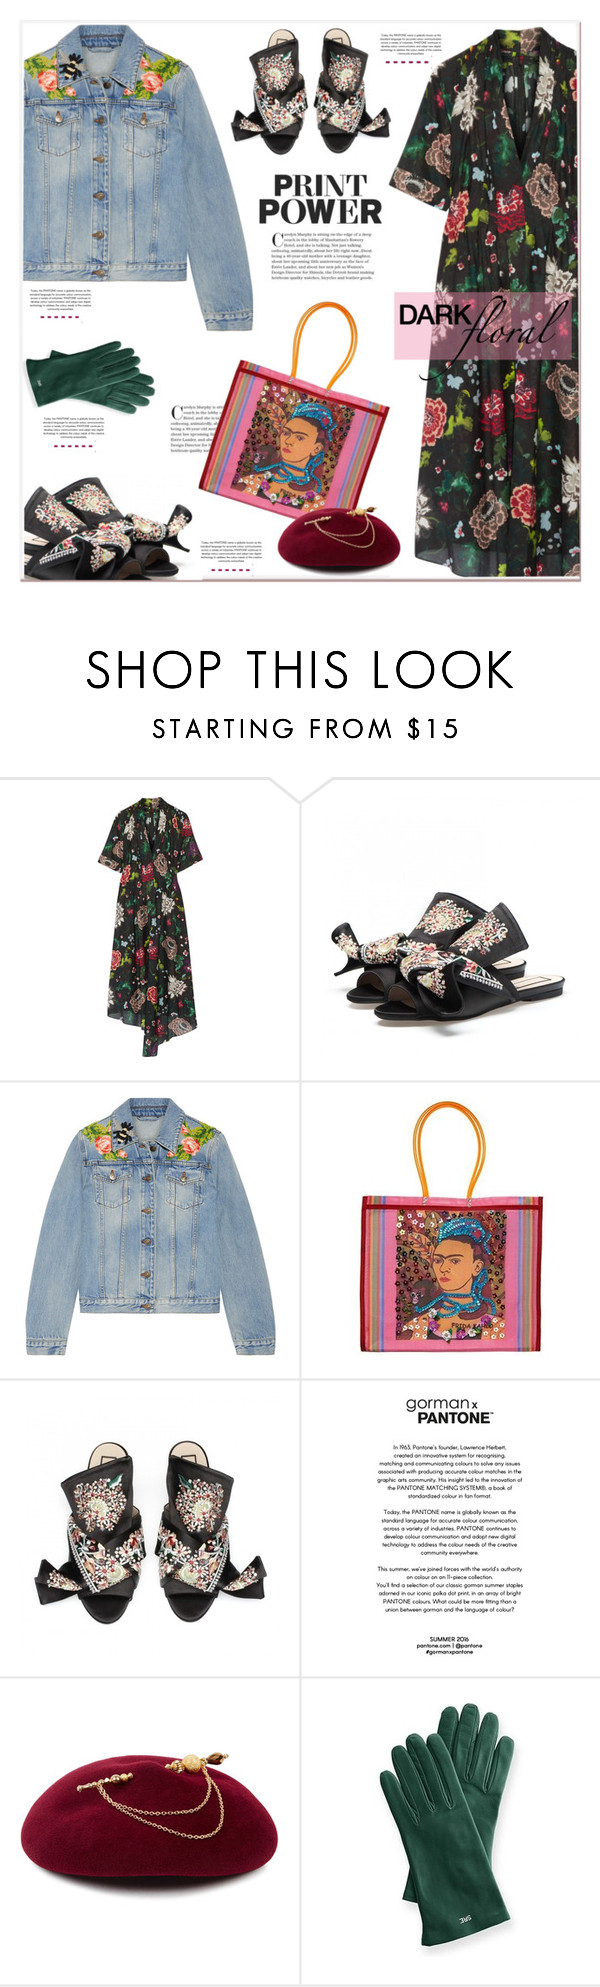 """""""Print Power"""" by anne-irene on Polyvore featuring ADAM, Gucci, Victoria Grant and Mark & Graham"""